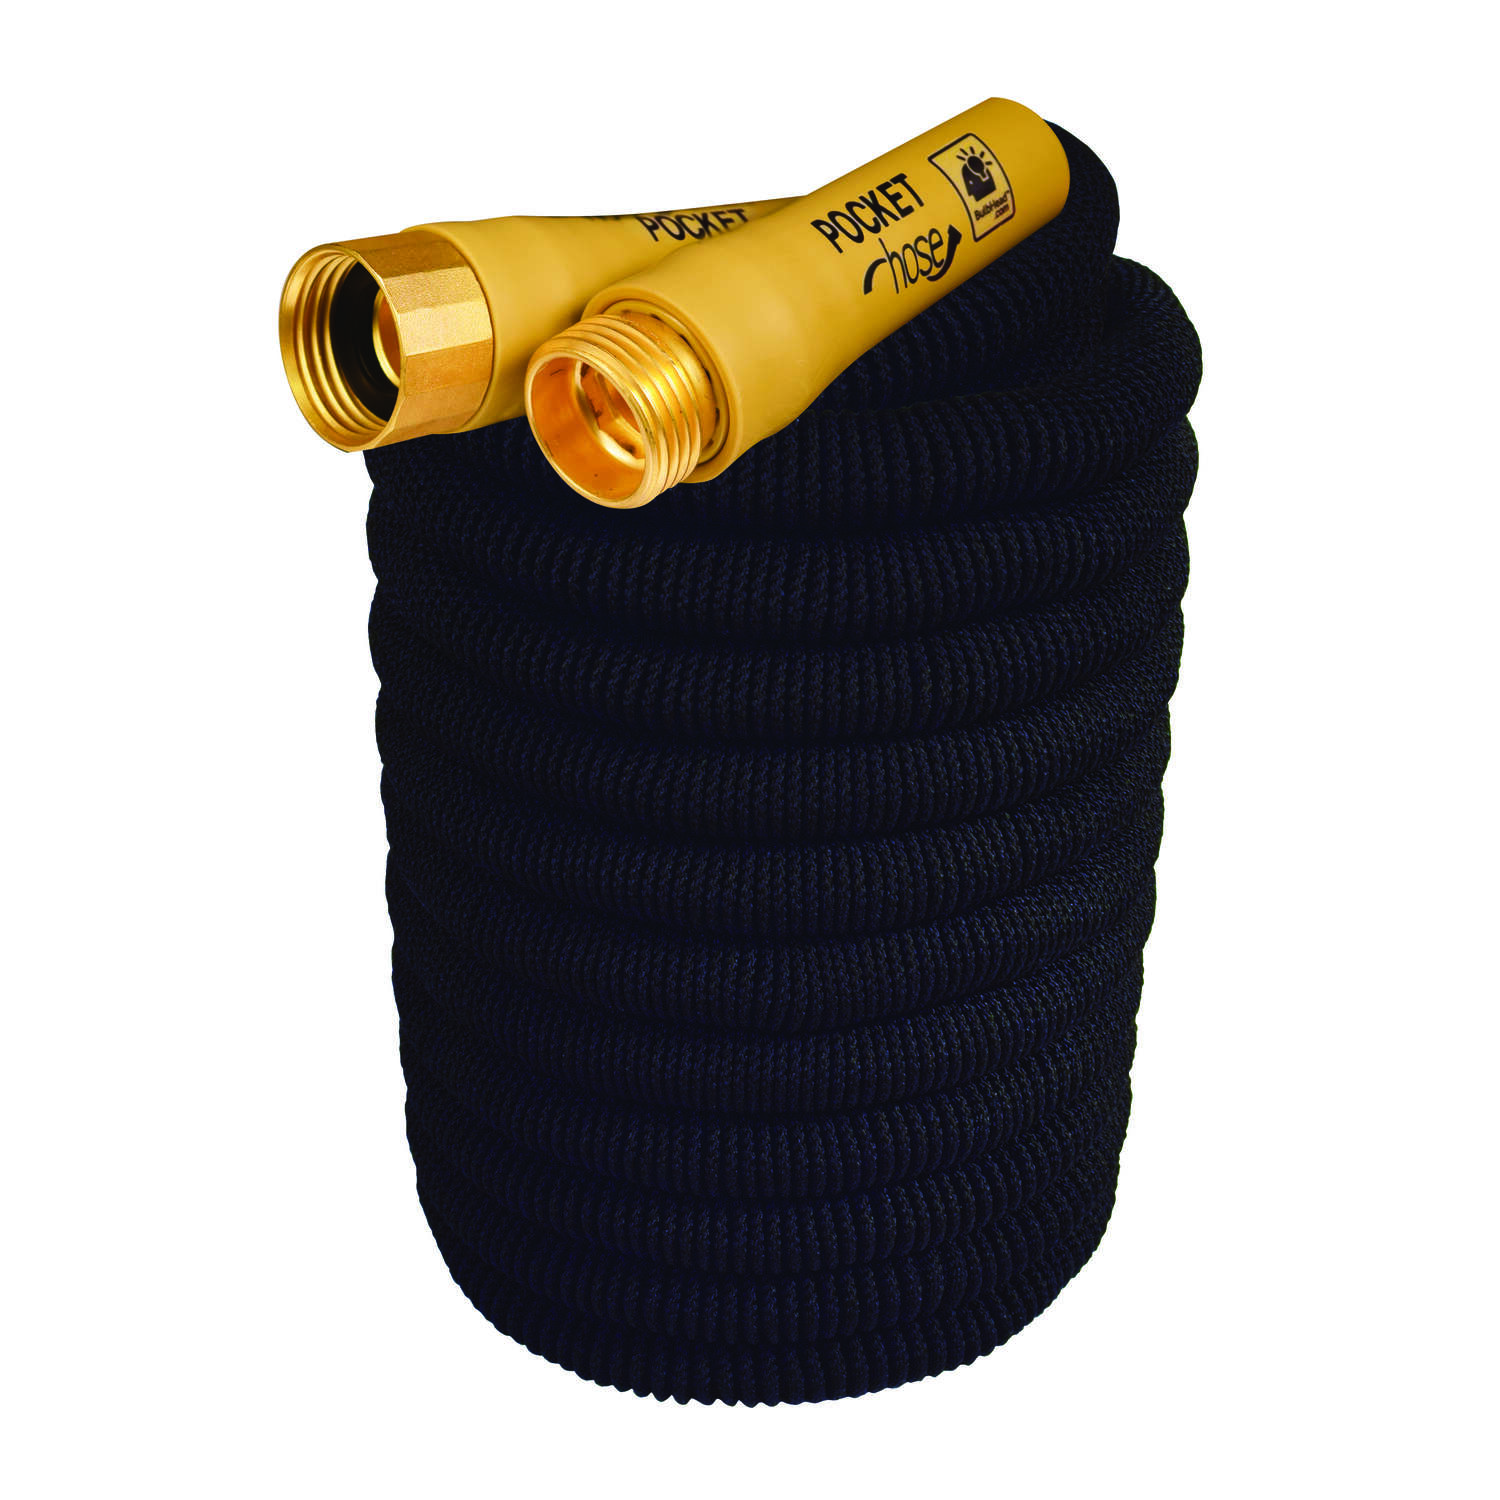 Telebrands  Top Brass Bullet As Seen On TV  3/4 in. Dia. x 75 ft. L Expanding  Black  Garden Hose